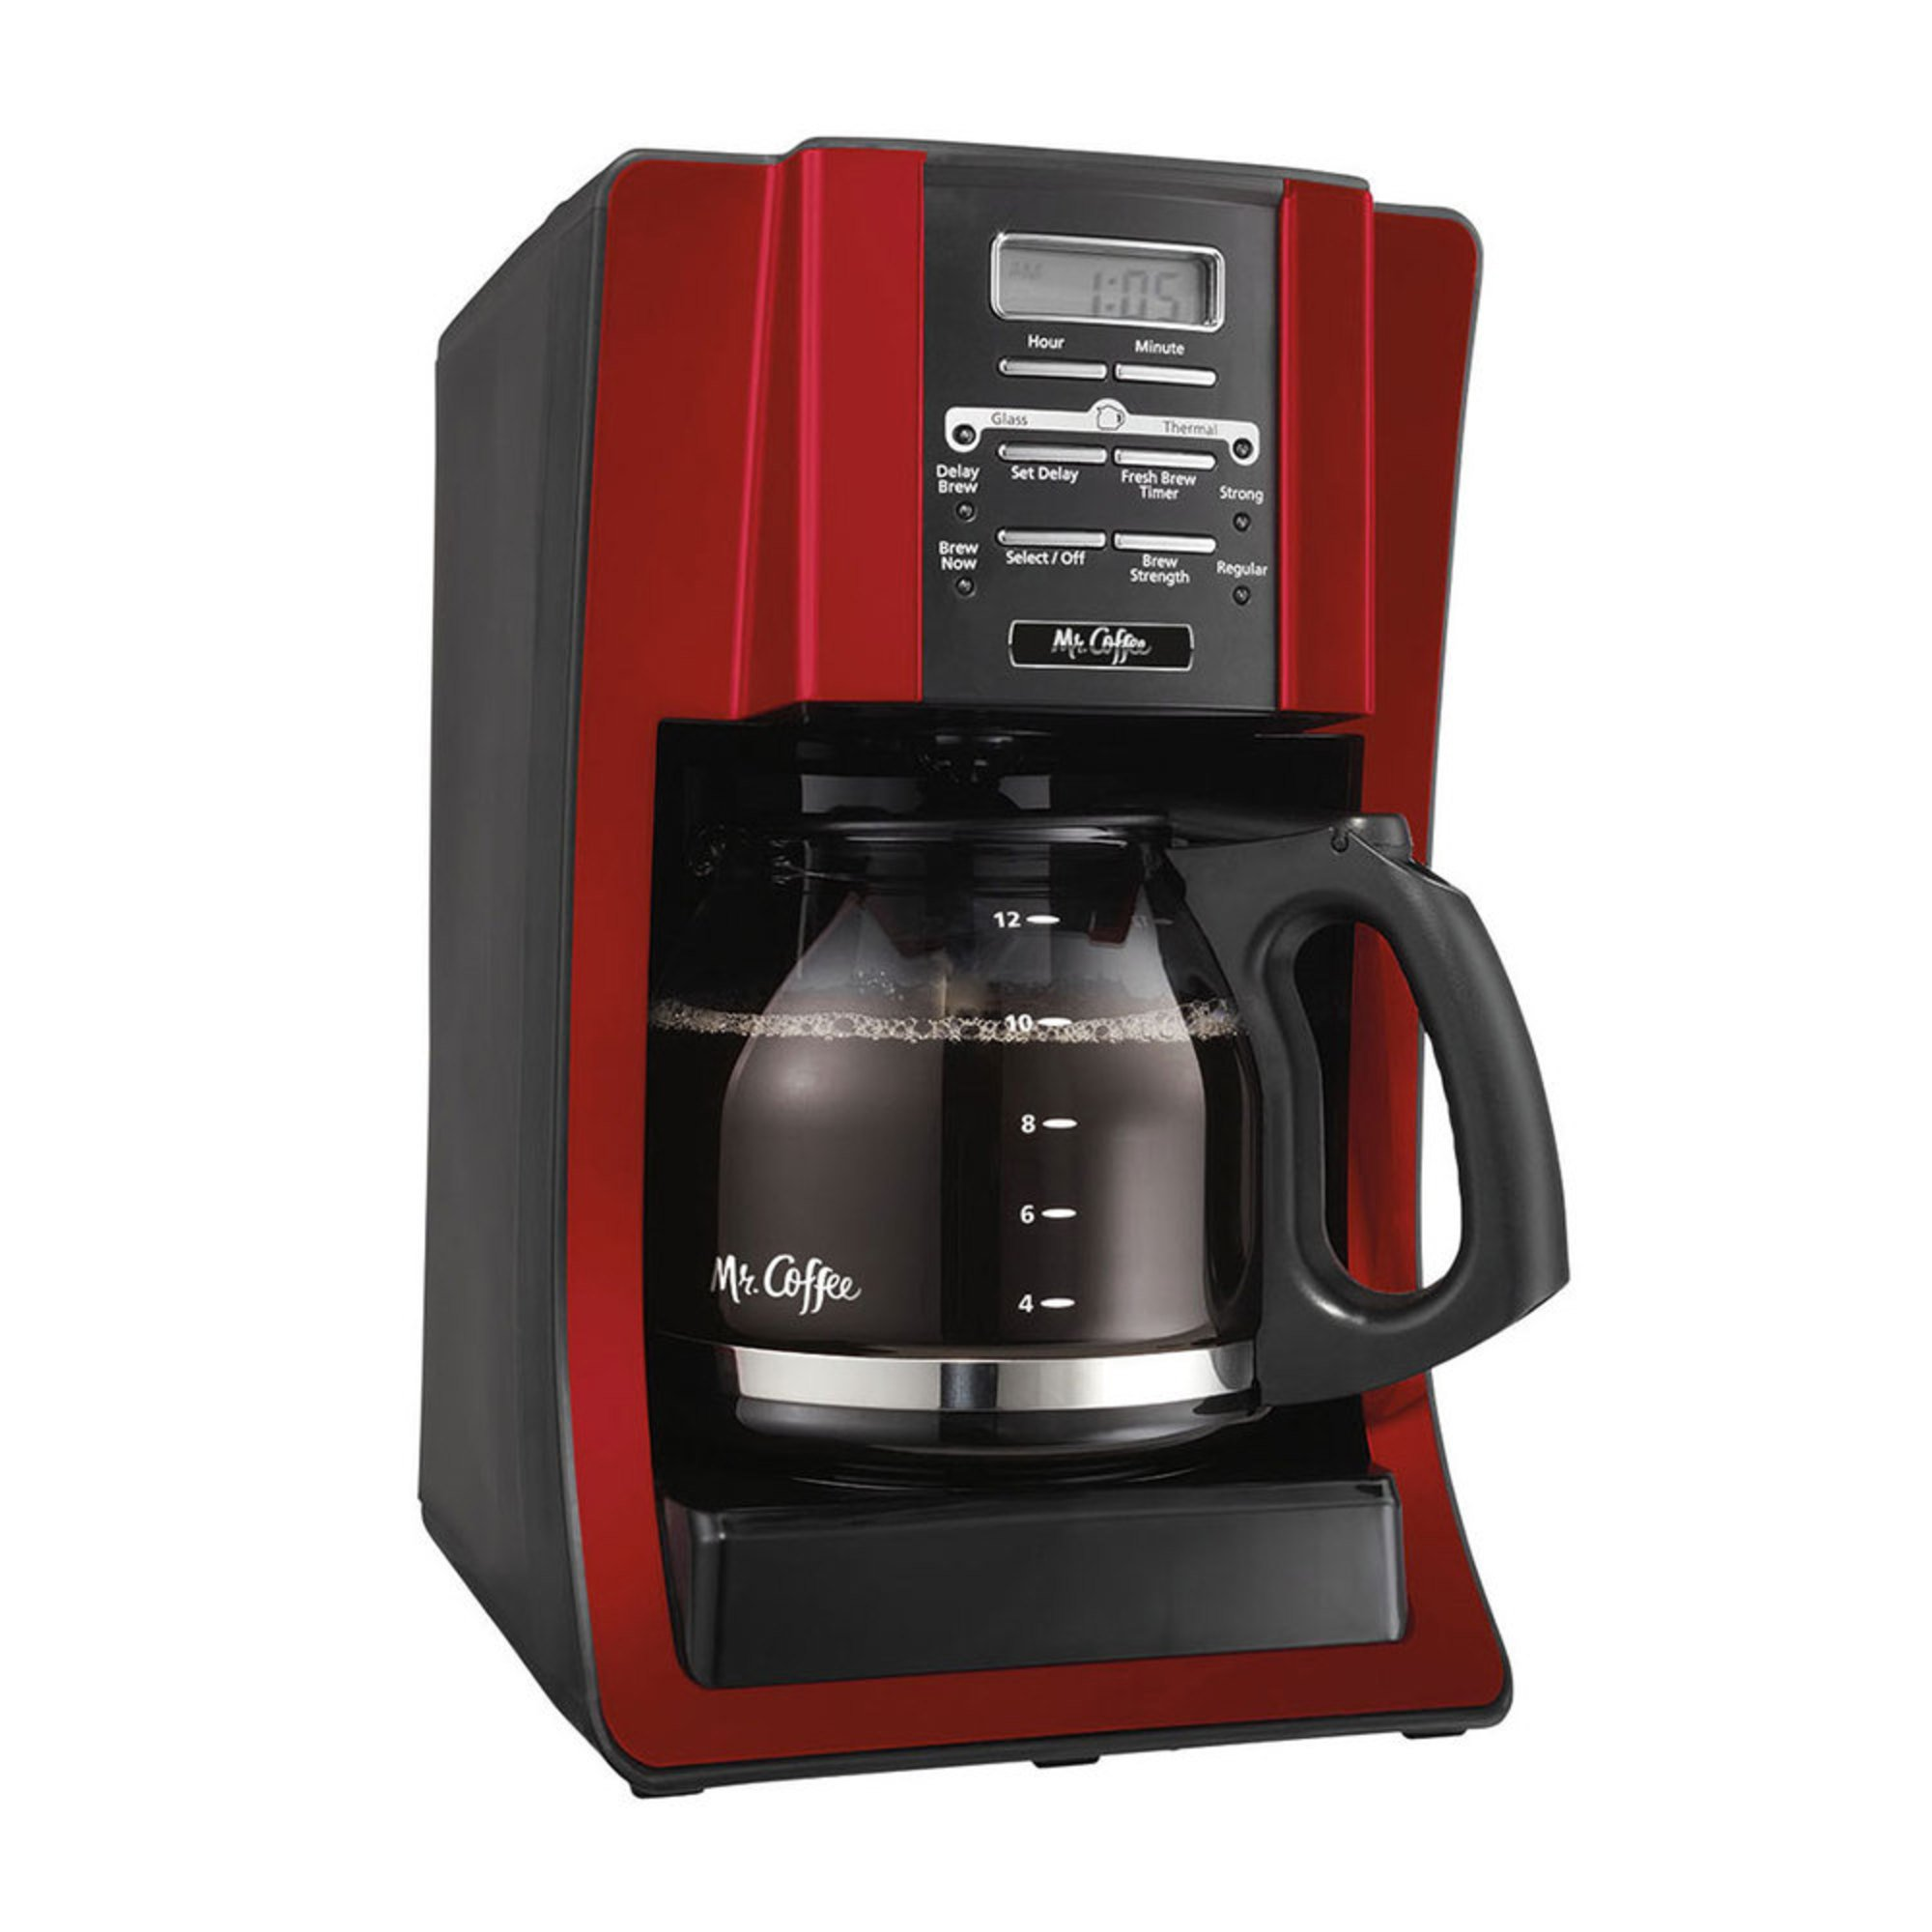 6 Cup Coffee Maker Programmable : Mr. Coffee 12-cup Programmable Coffee Maker (bvmc-sjx36-rb) Coffee Makers For The Home ...